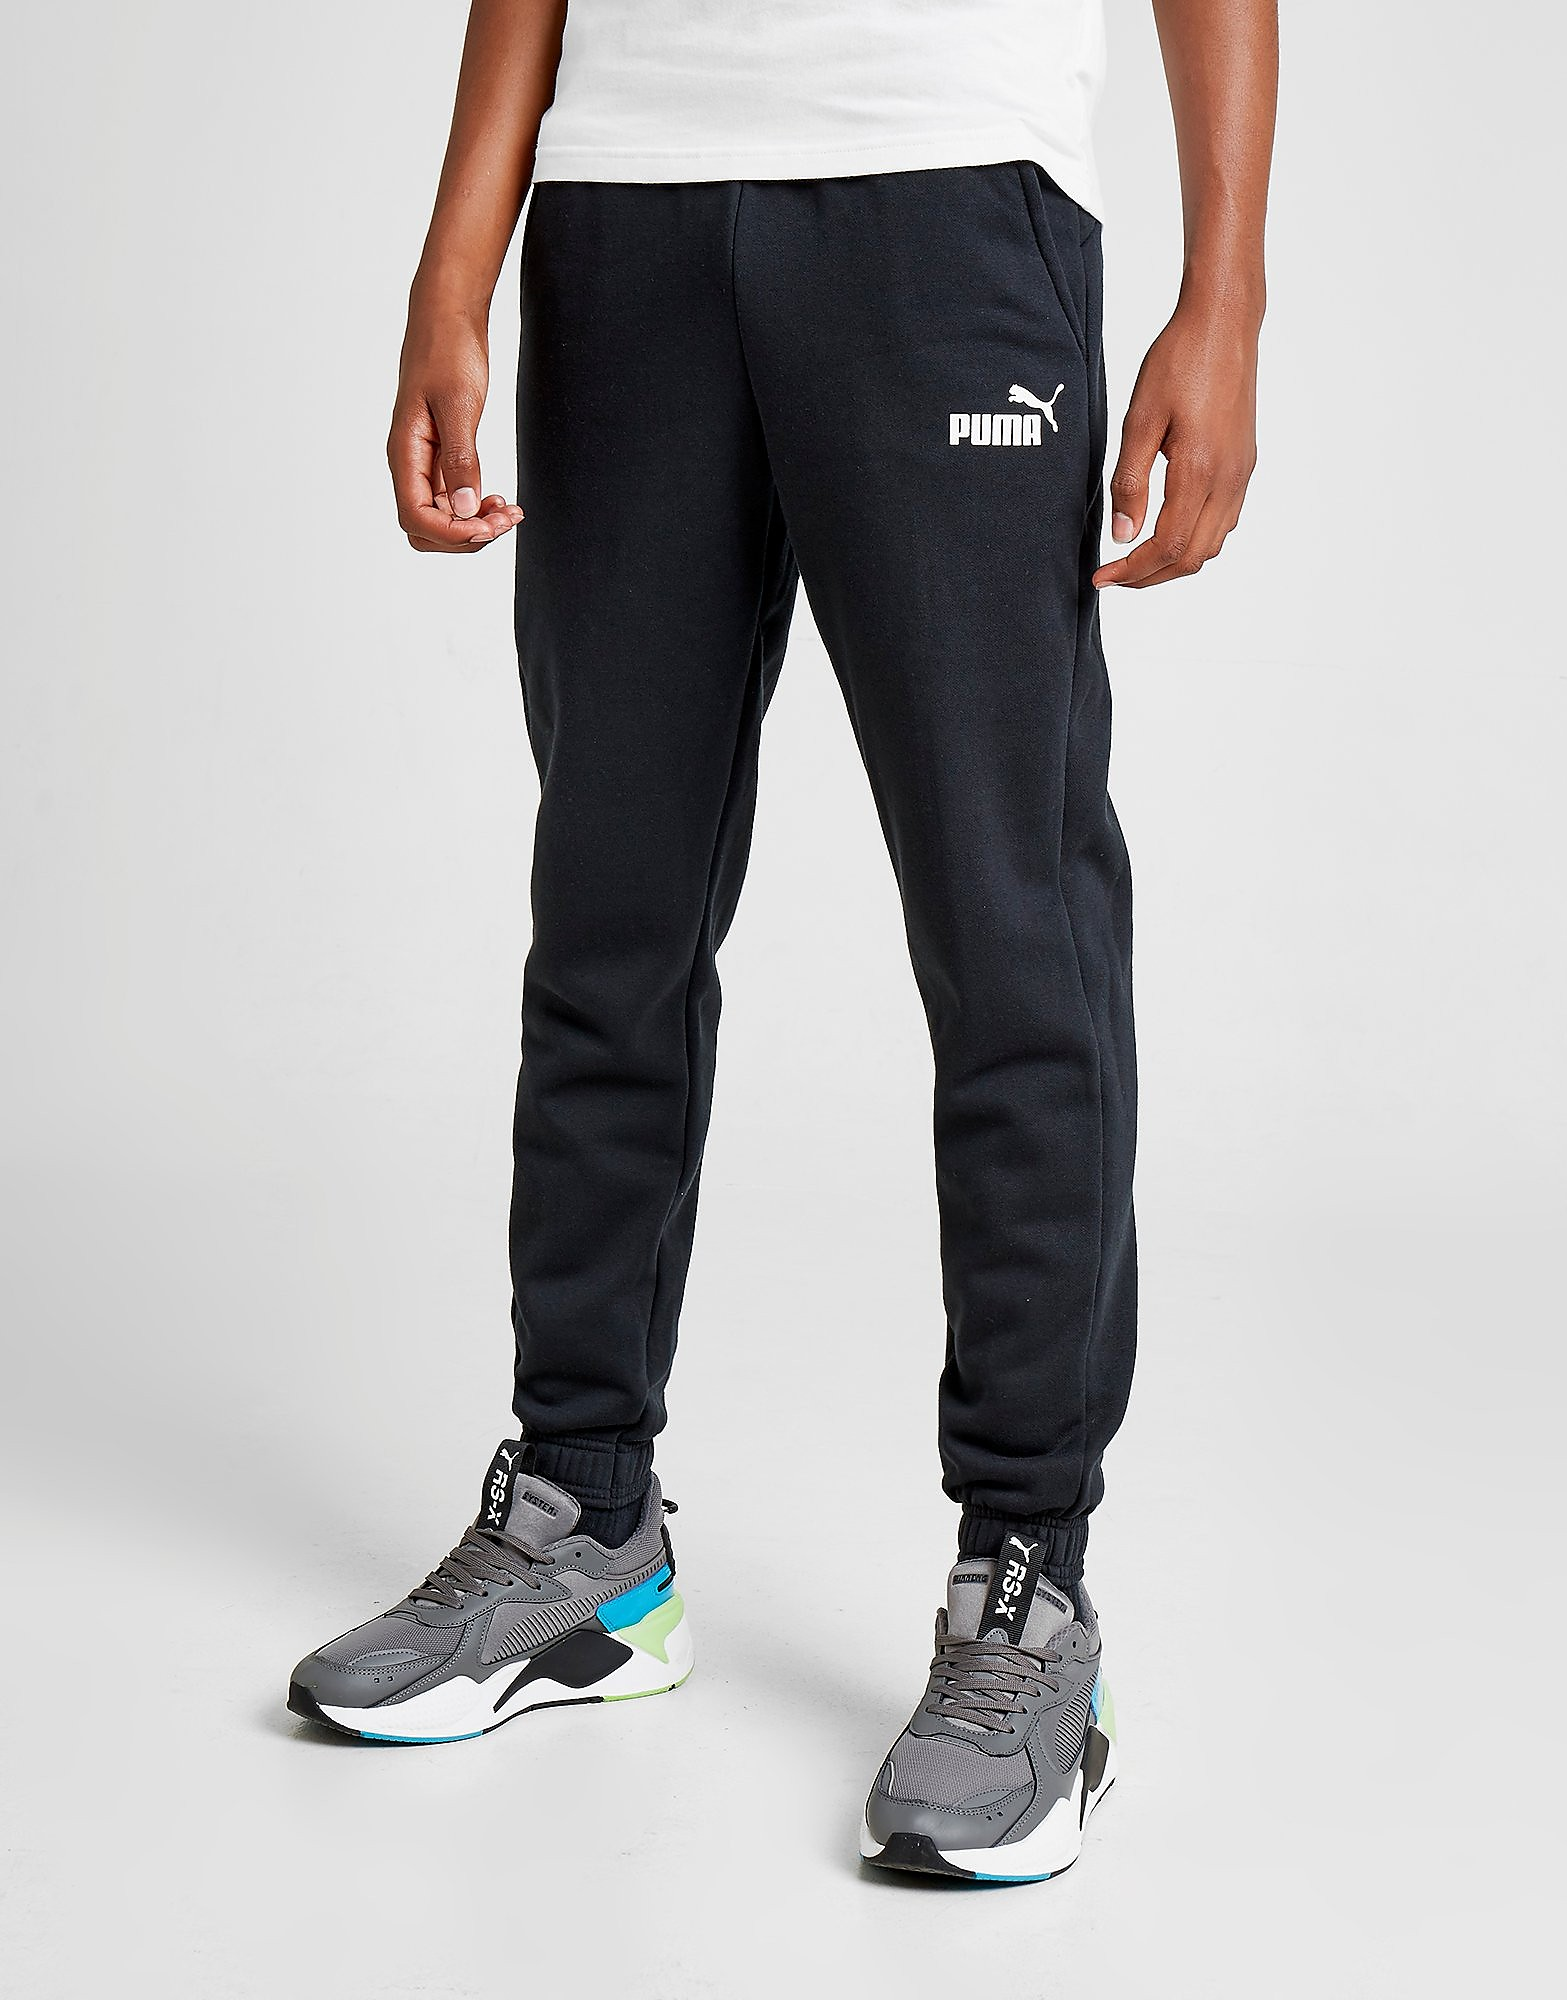 PUMA Core Logo Track Pants Junior Zwart Kind Zwart